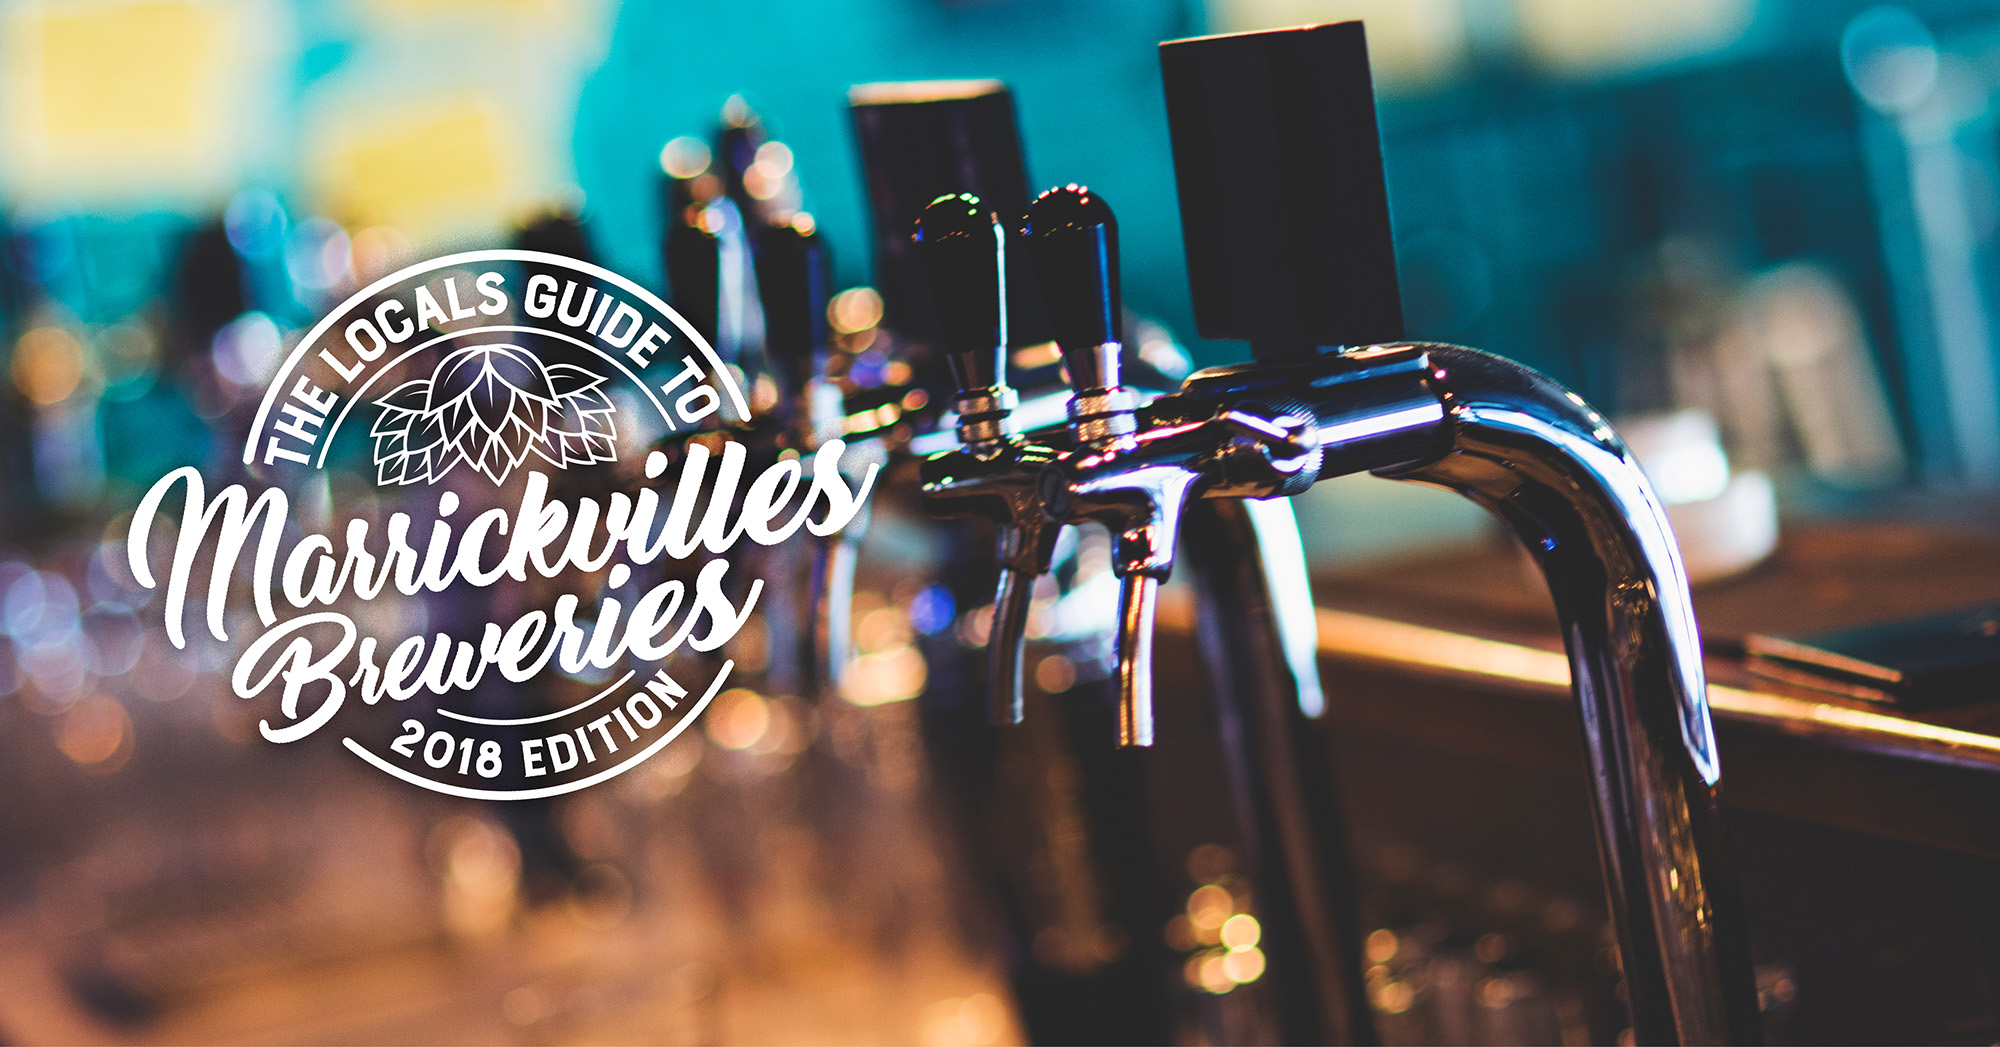 The local's guide to Marrickville breweries